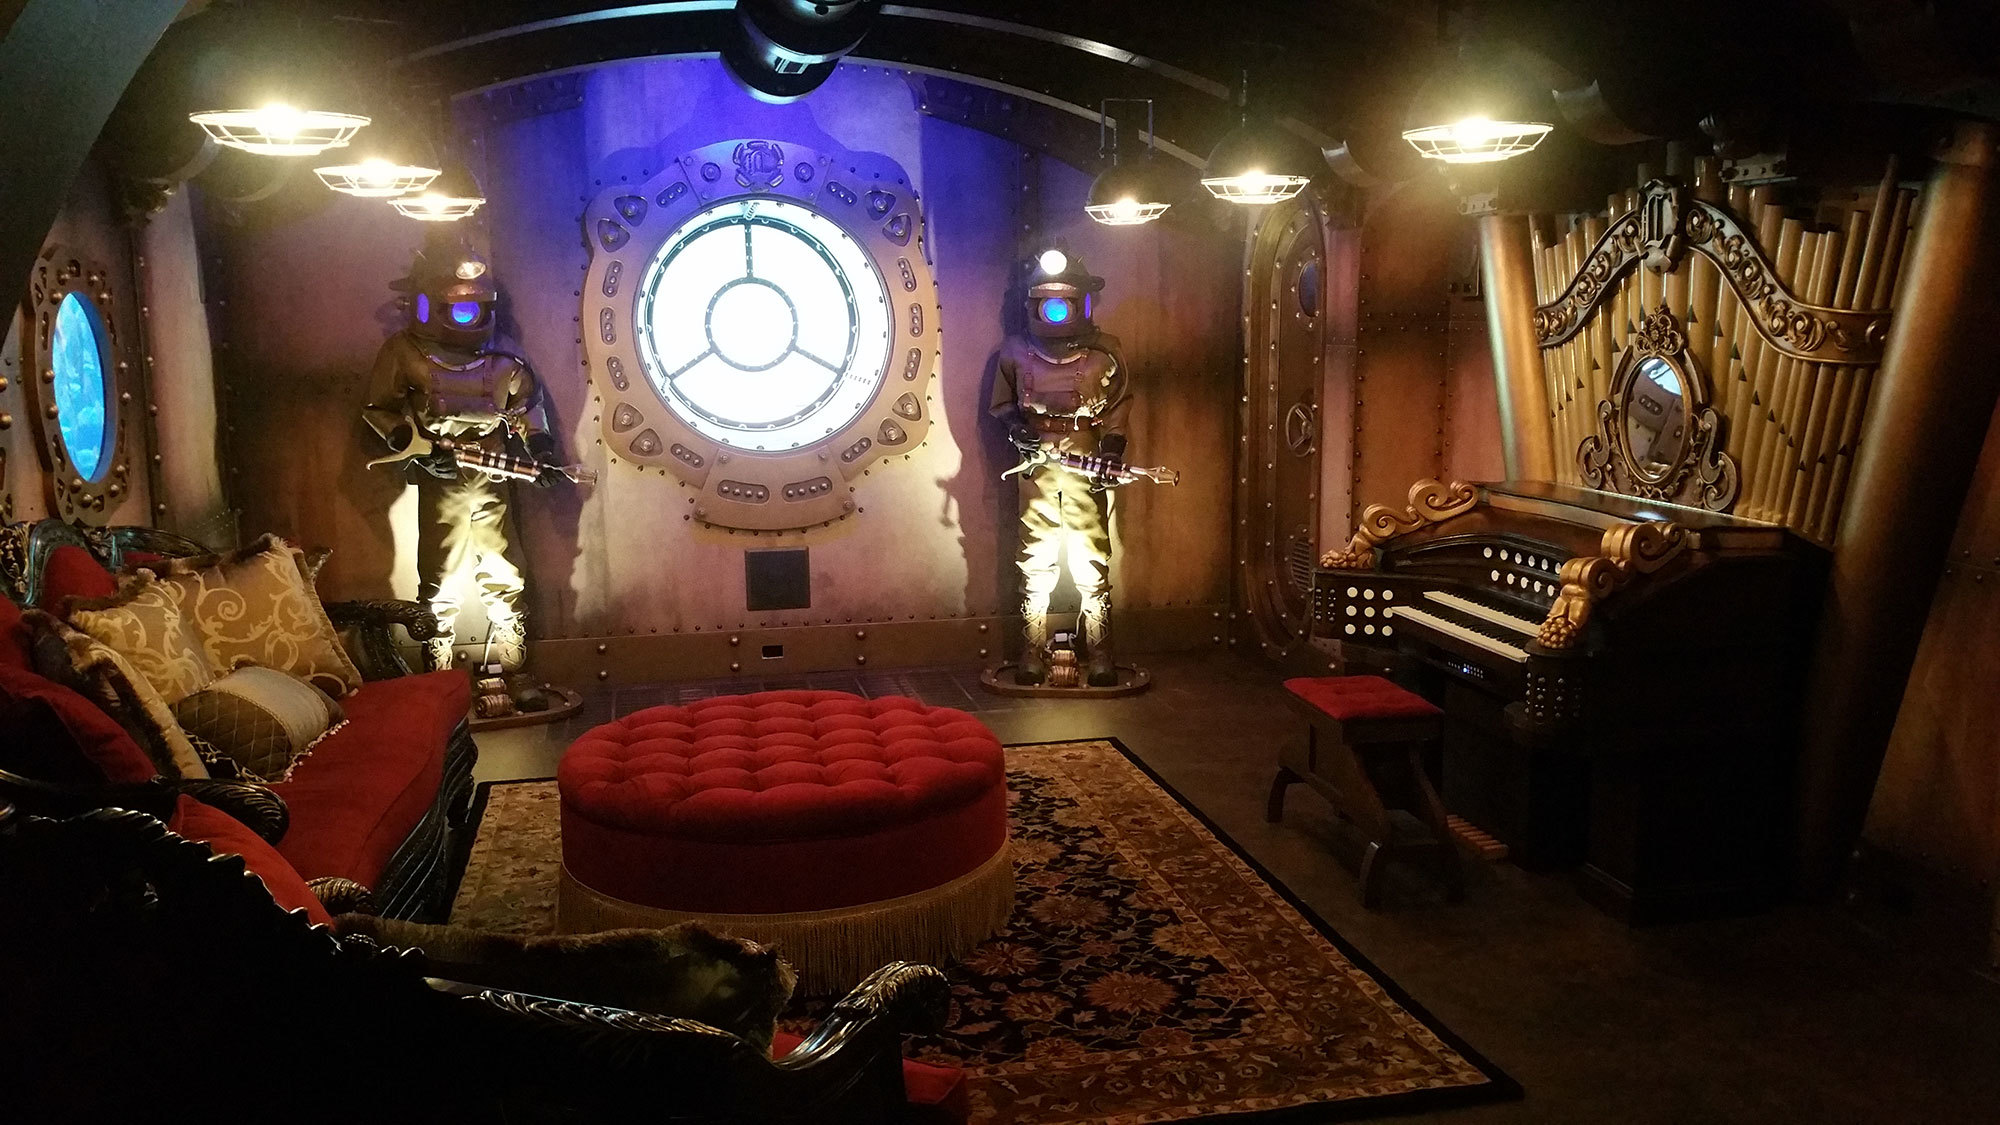 20,000 Leagues Under the Sea Nautical Home Theatre in Florida Residential Home